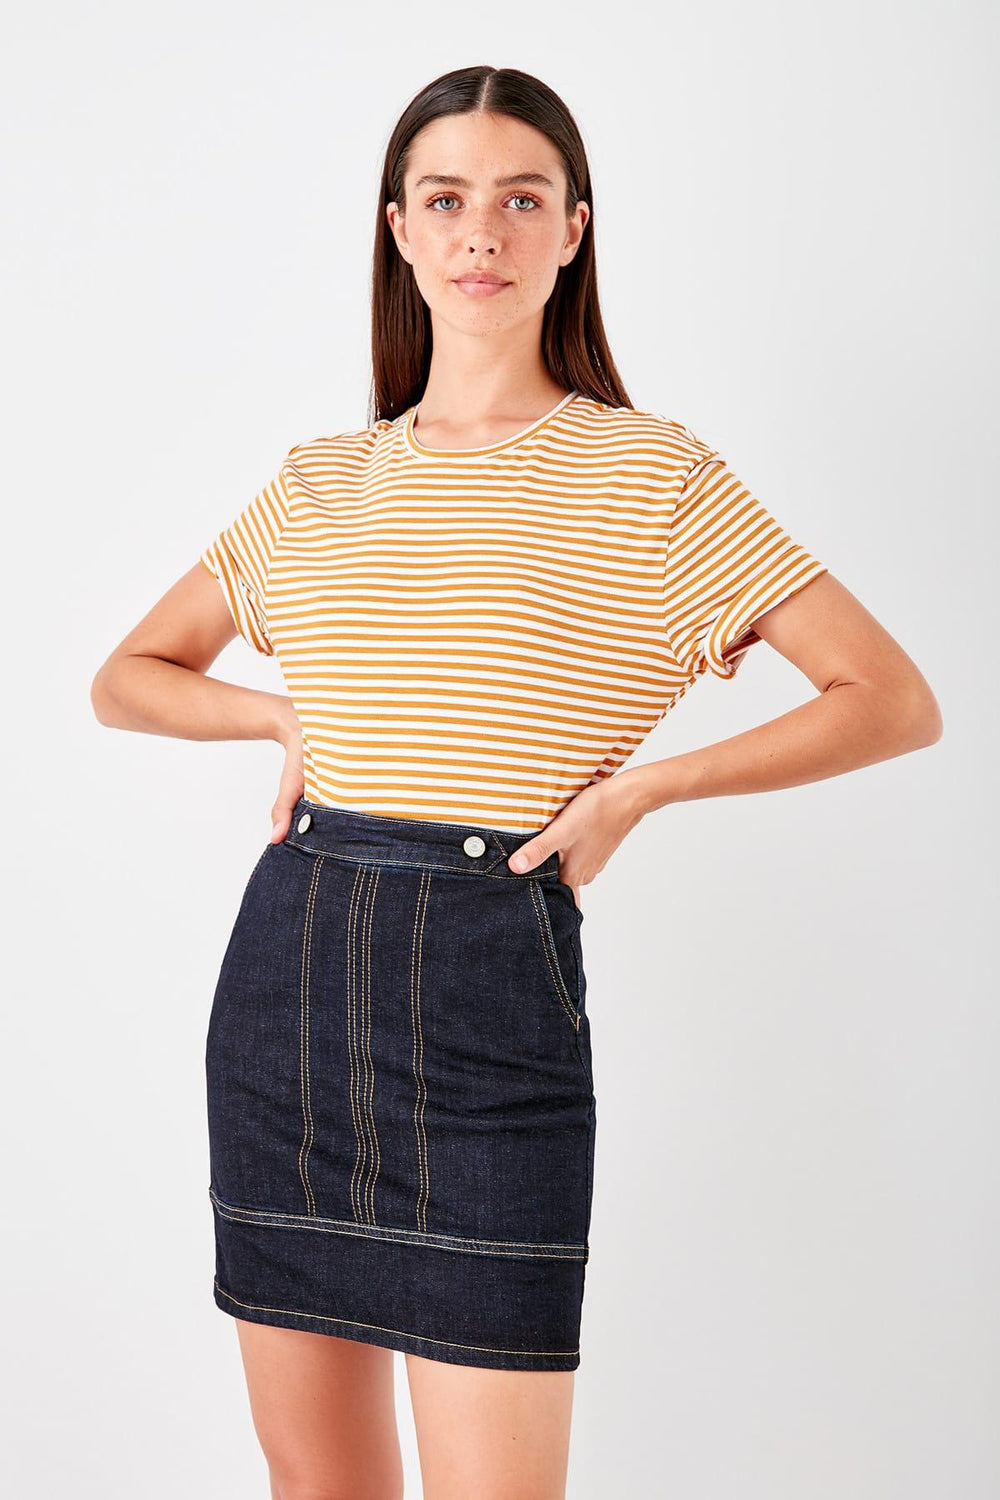 Miss Zut Miss Zut Navy Blue Studs Detailed Denim Skirt Miss Zut &CO